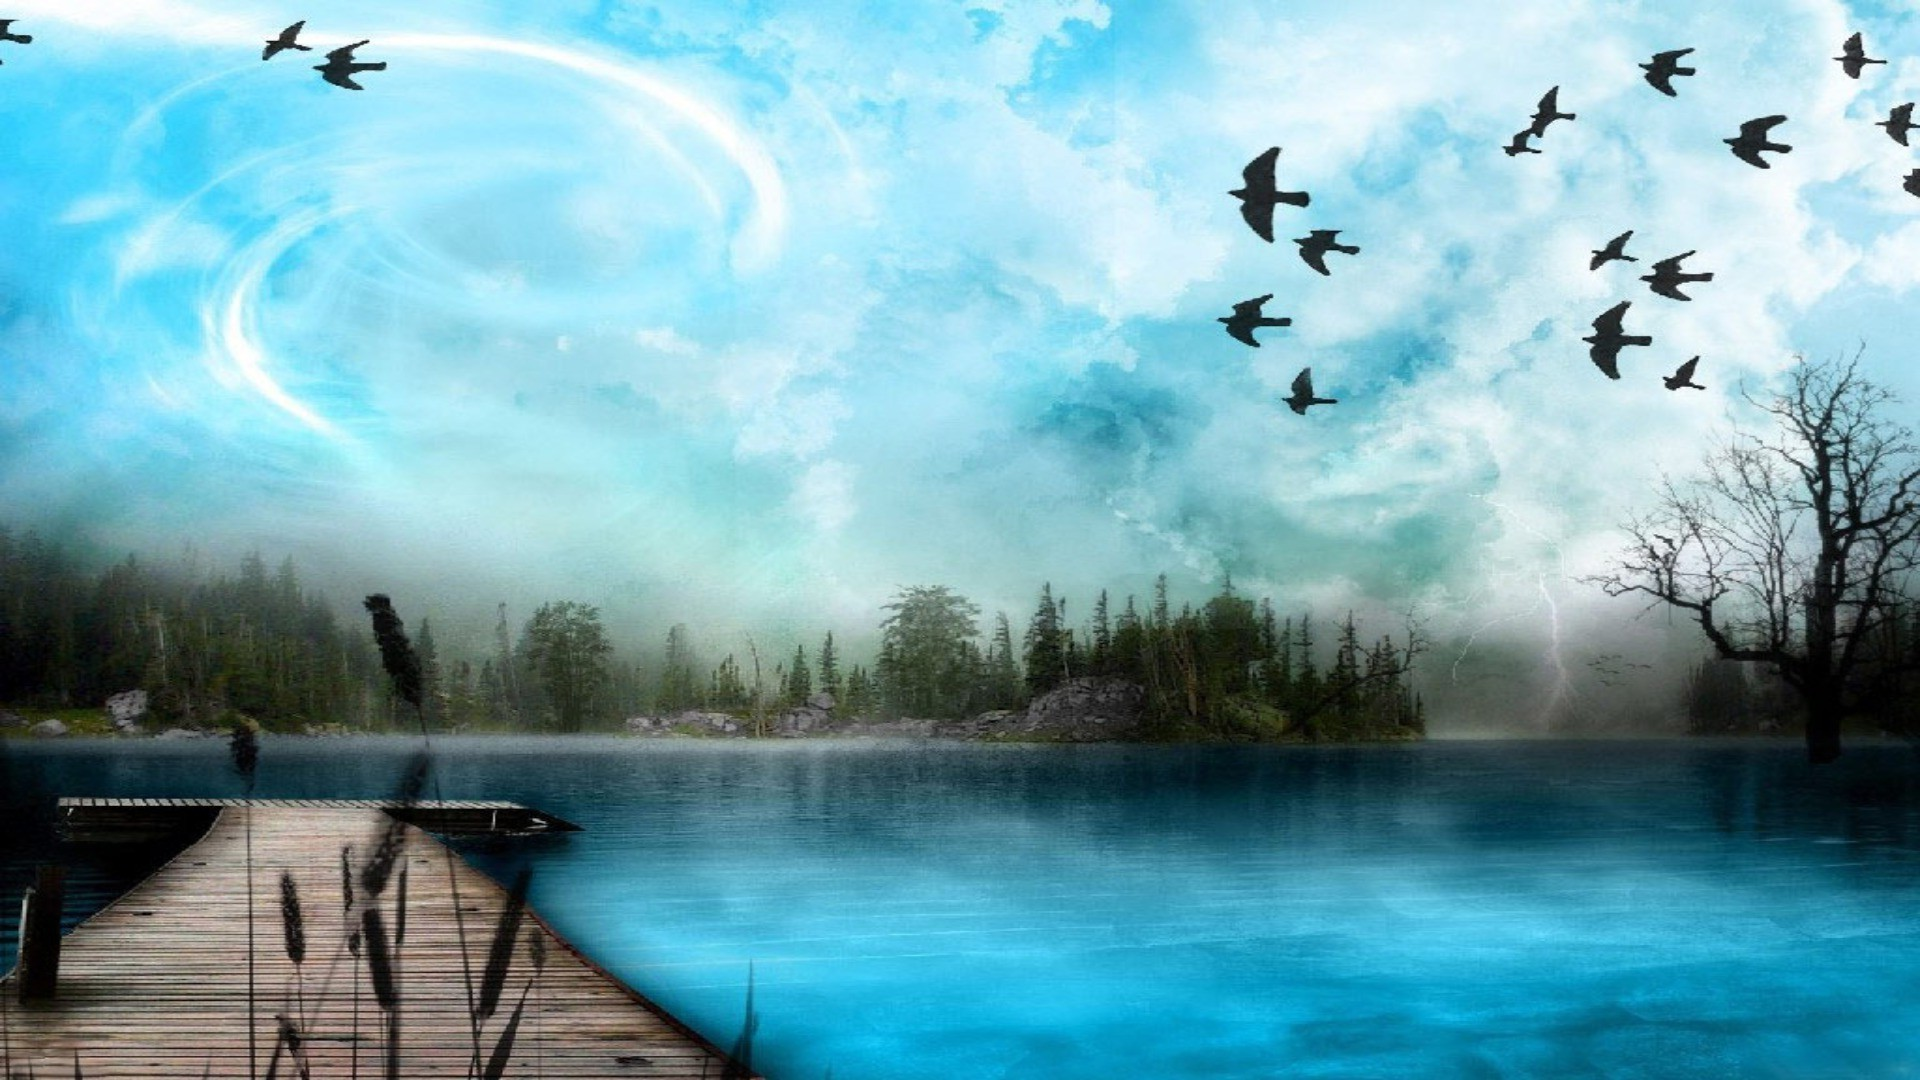 Blue expanse of the lake,birds,trees